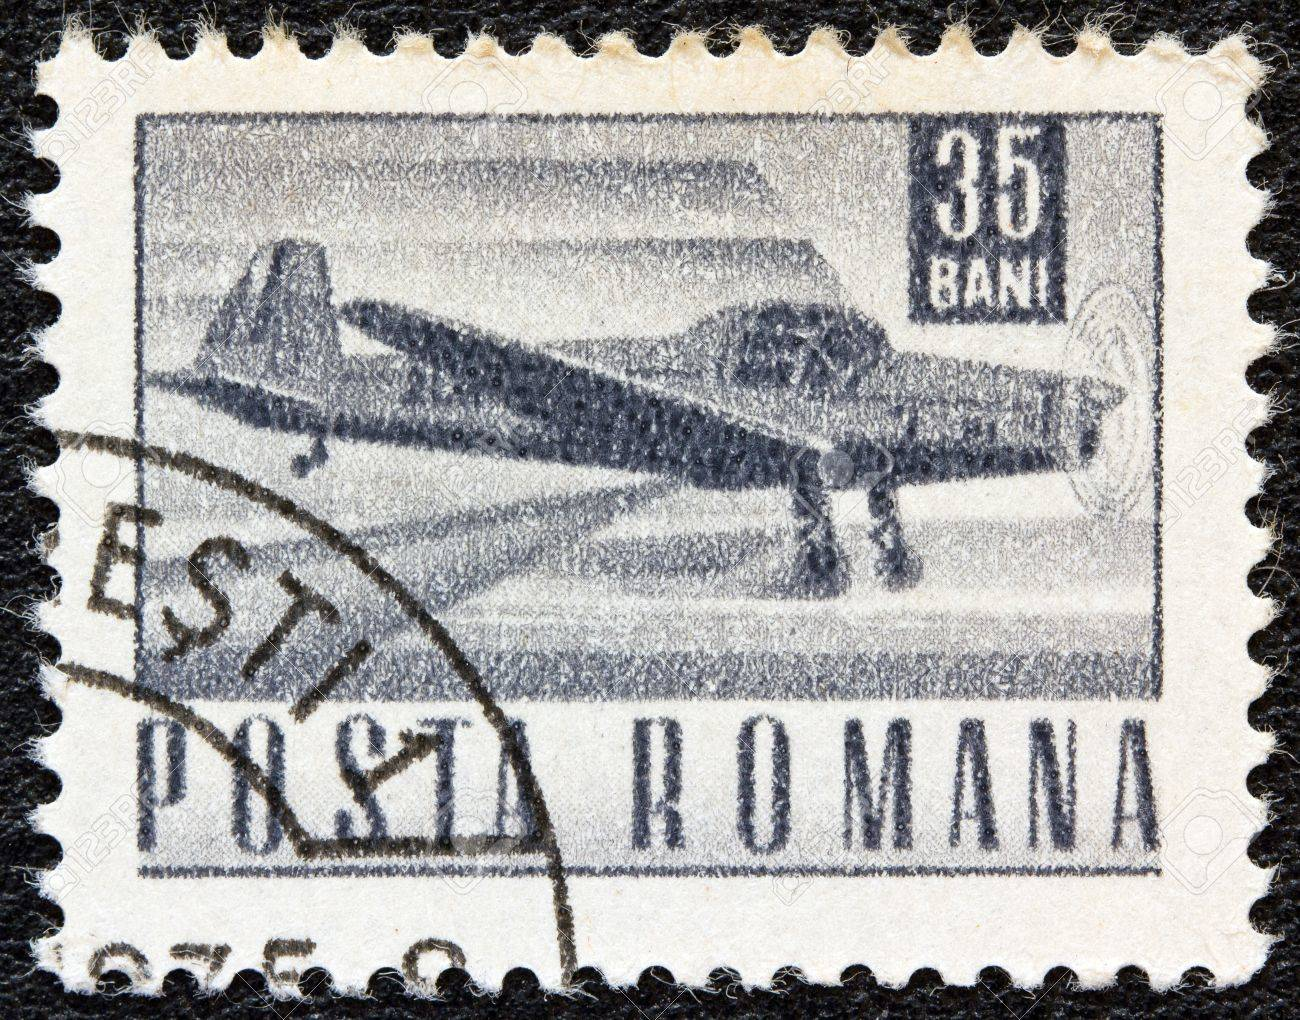 ROMANIA - CIRCA 1967: A stamp printed in Romania shows a Zlin Z-226A akrobat plane, circa 1967.  Stock Photo - 17403344